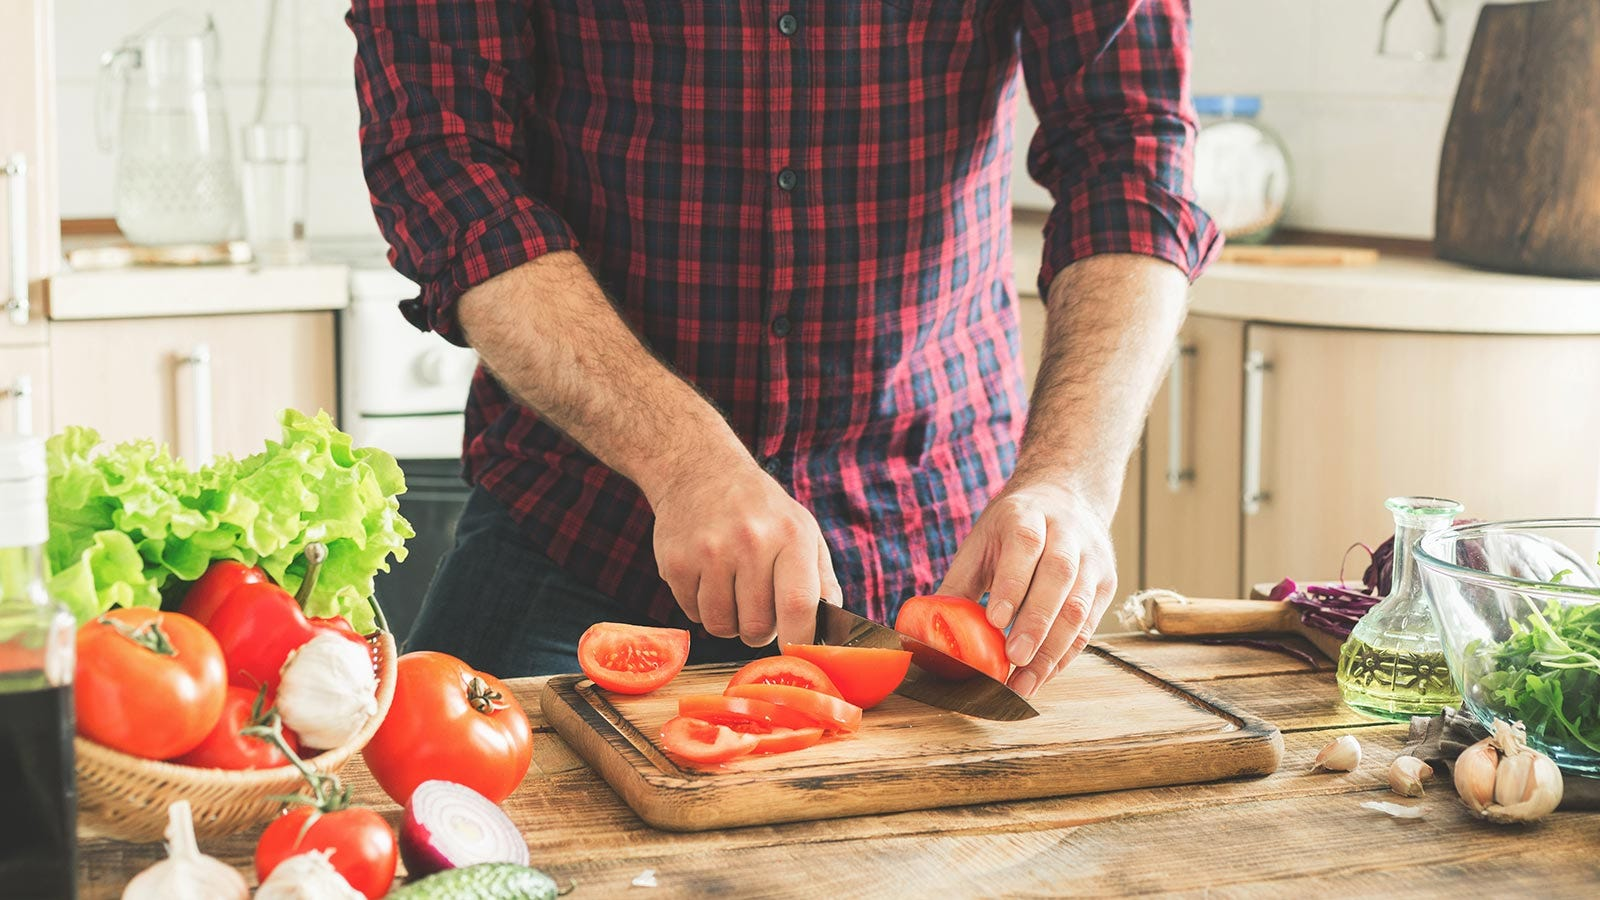 A man chopping fresh vegetables in a sunny kitchen.